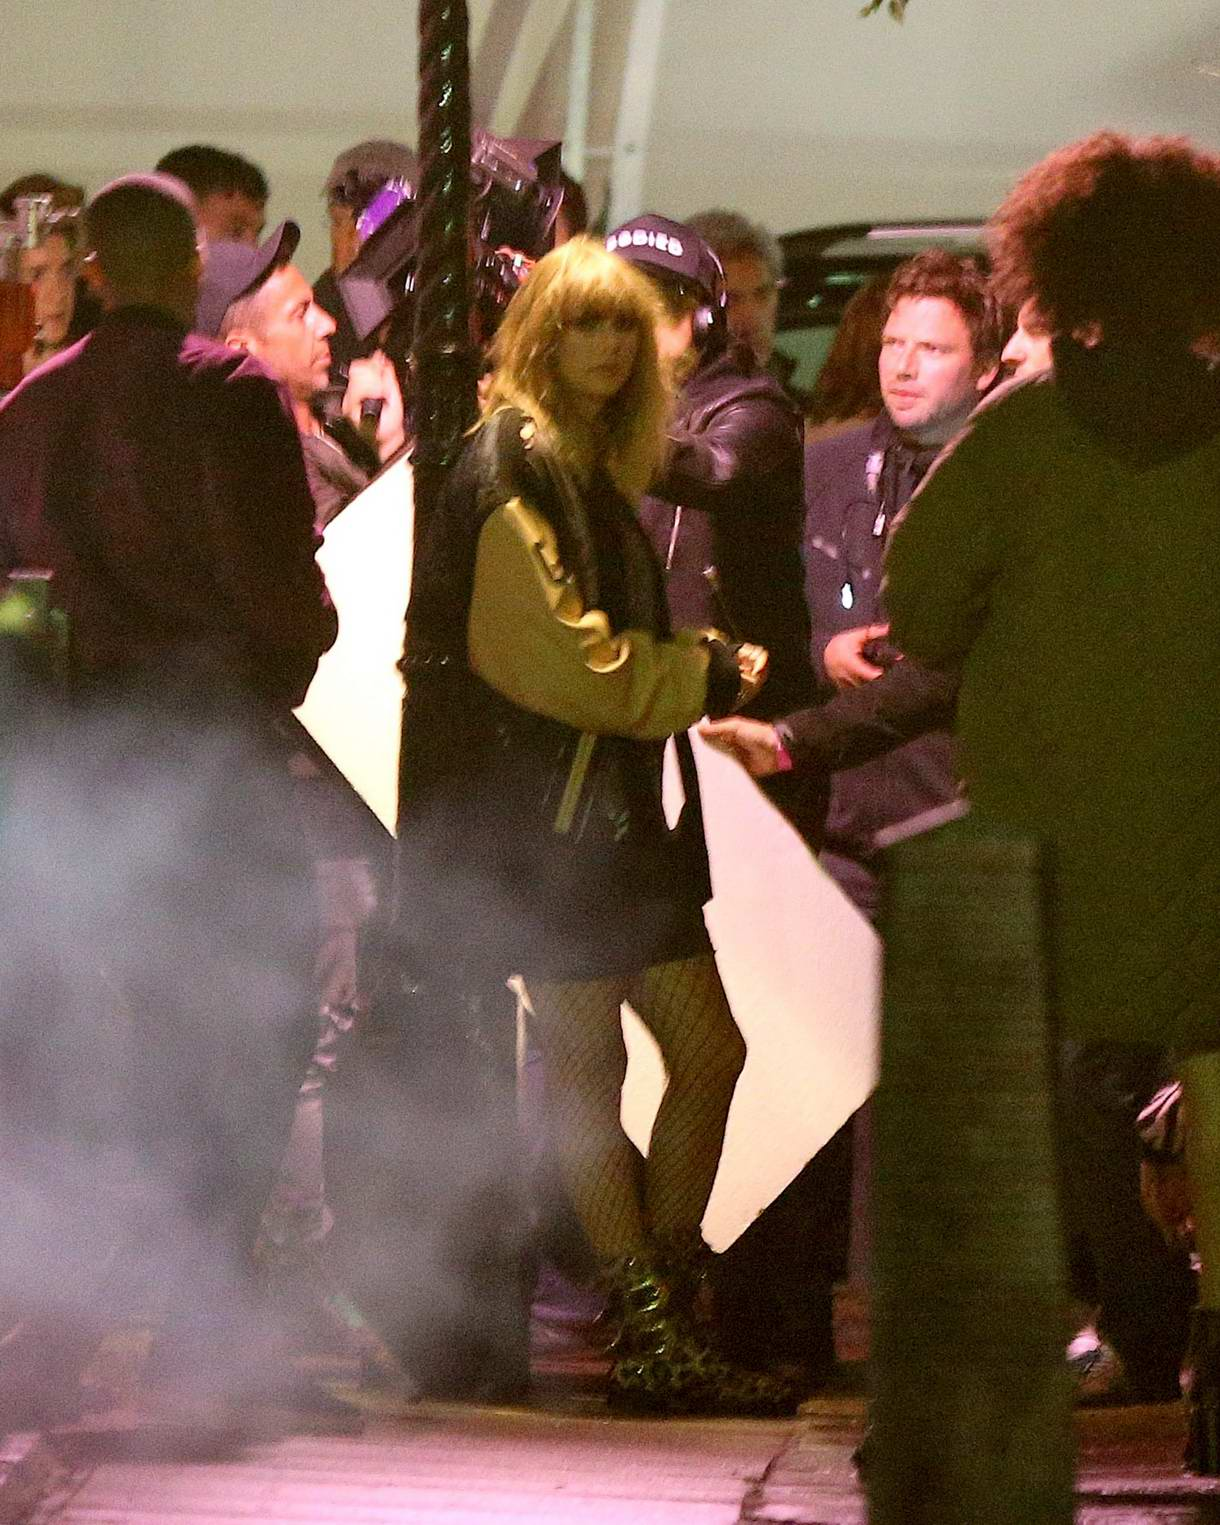 Taylor Swift films her new music video in London